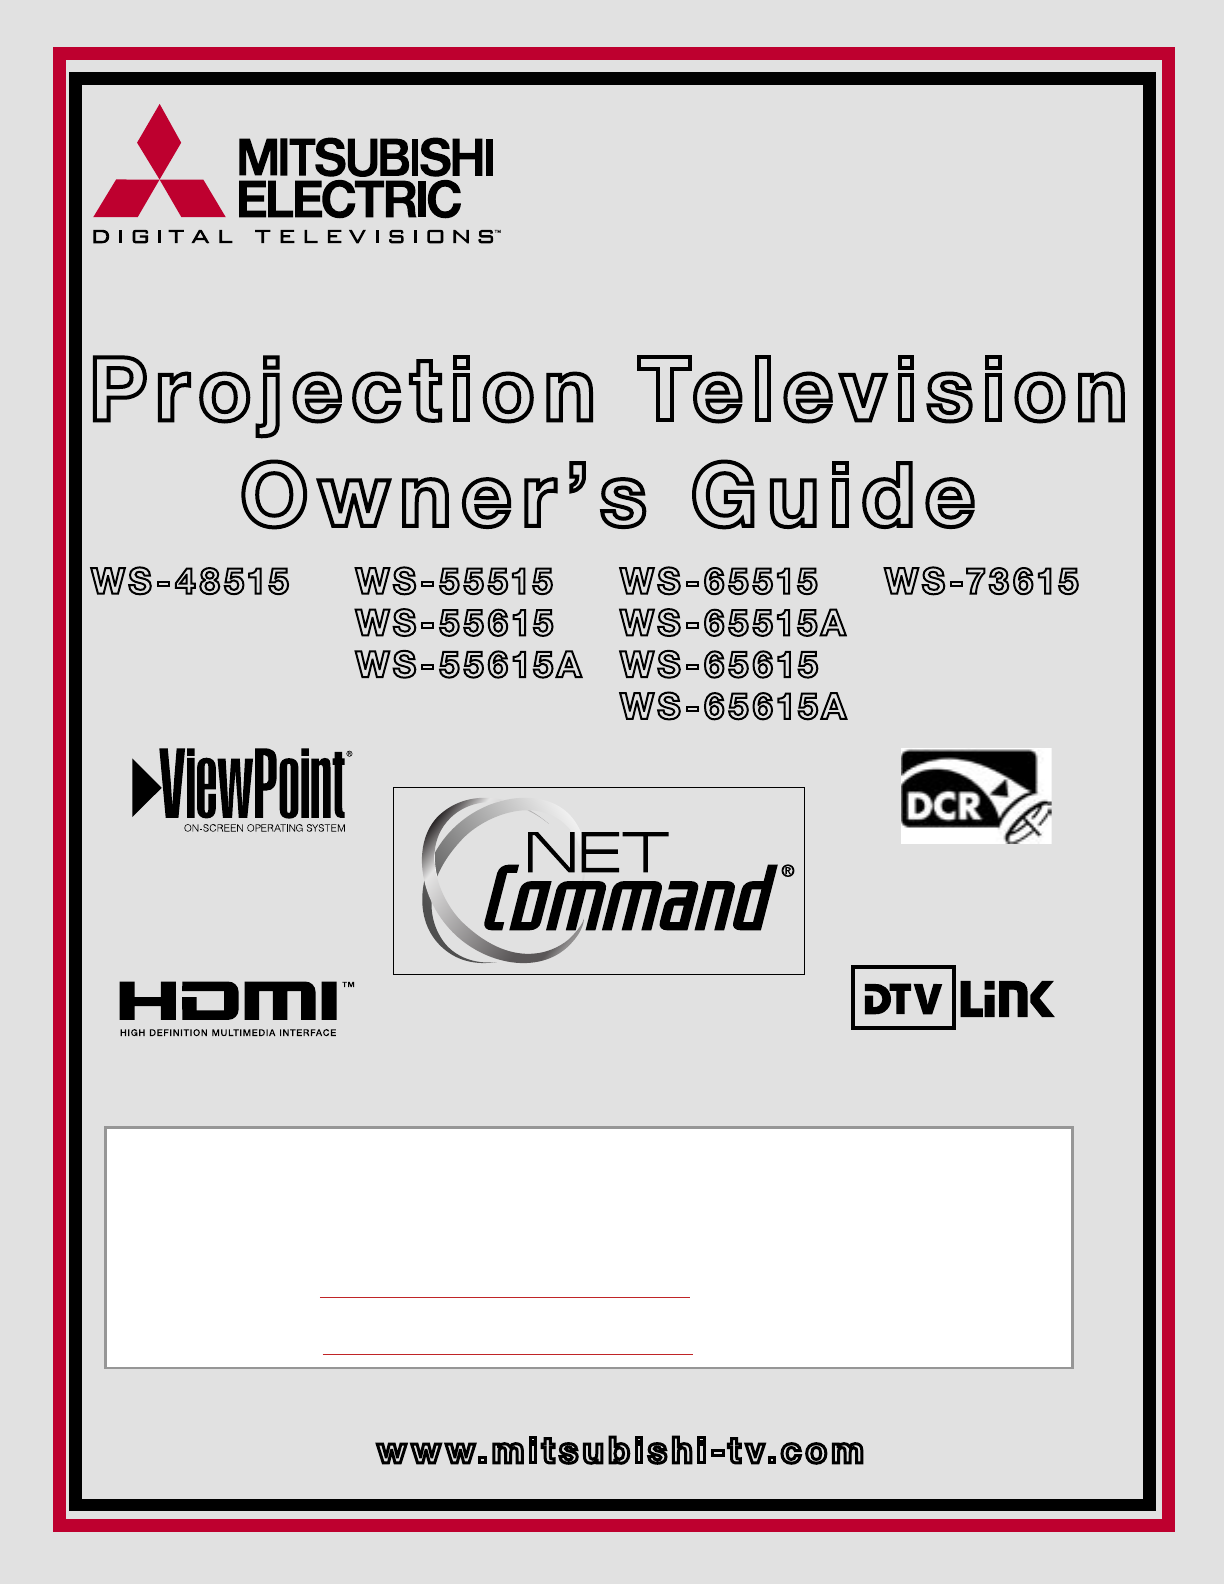 mitsubishi electronics projection television ws 55515 user guide